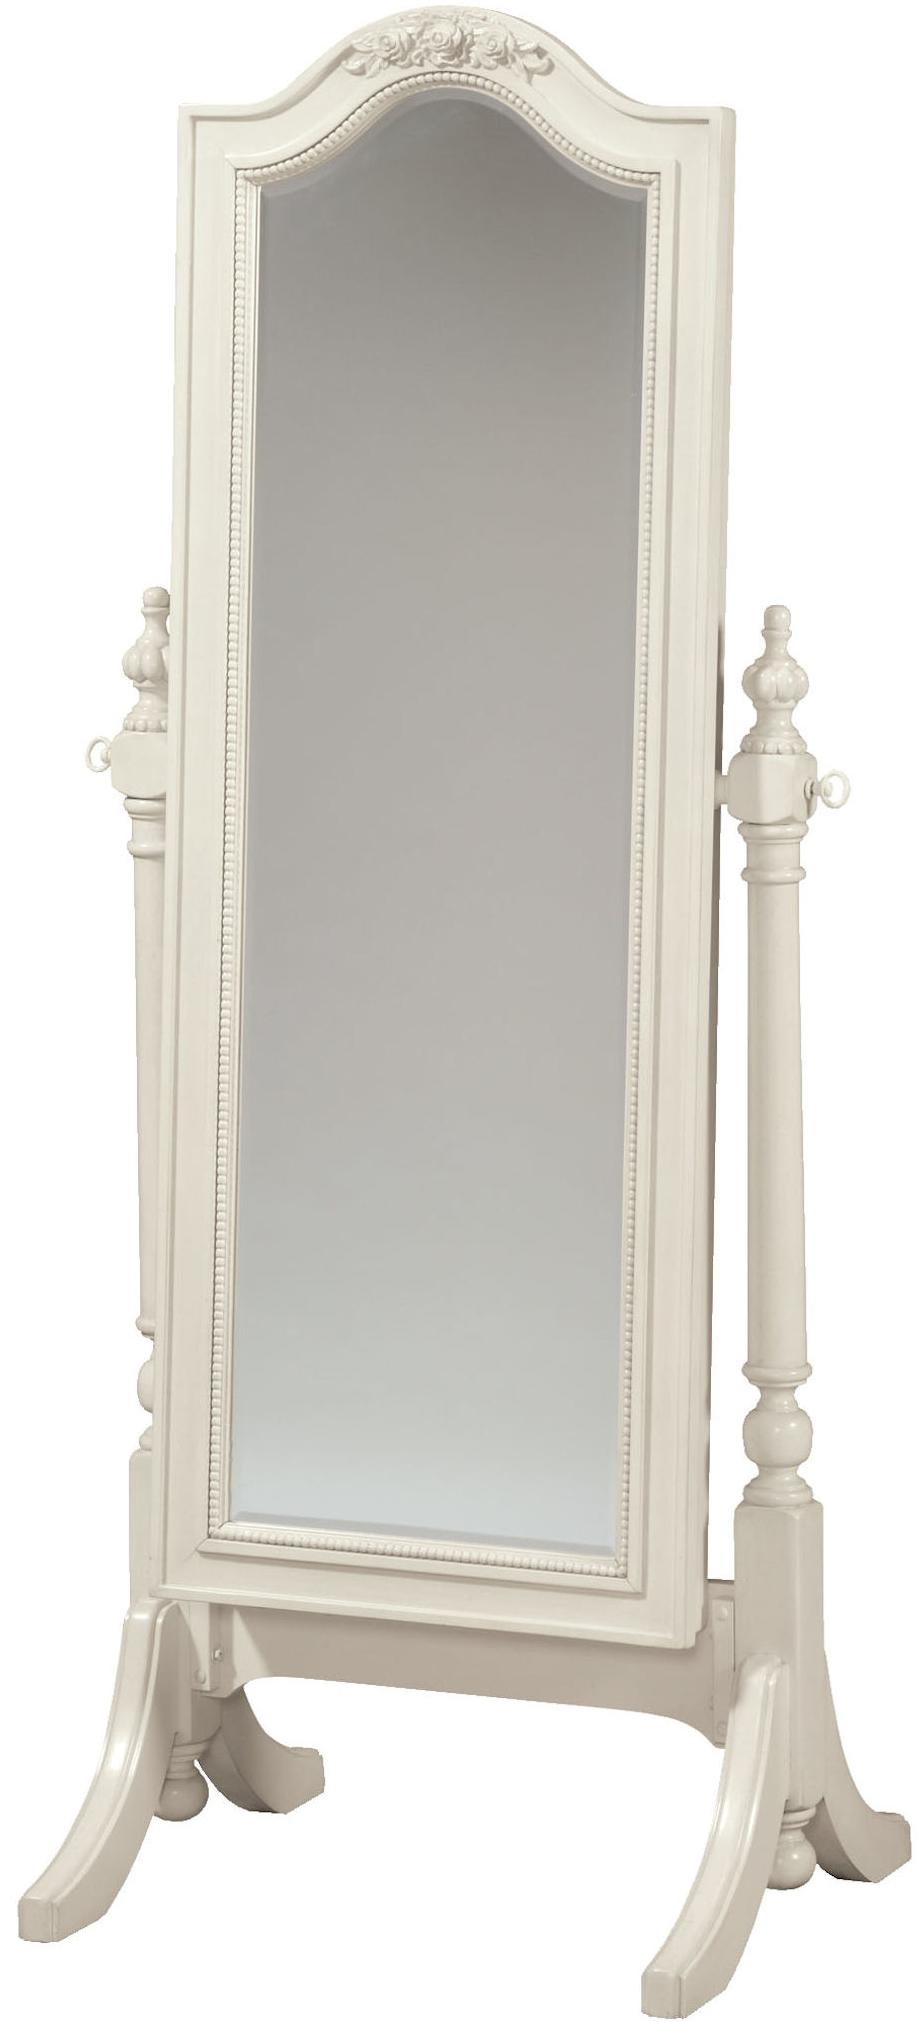 Morris Home Greenville Greenville Mirror with Storage - Item Number: 136A034